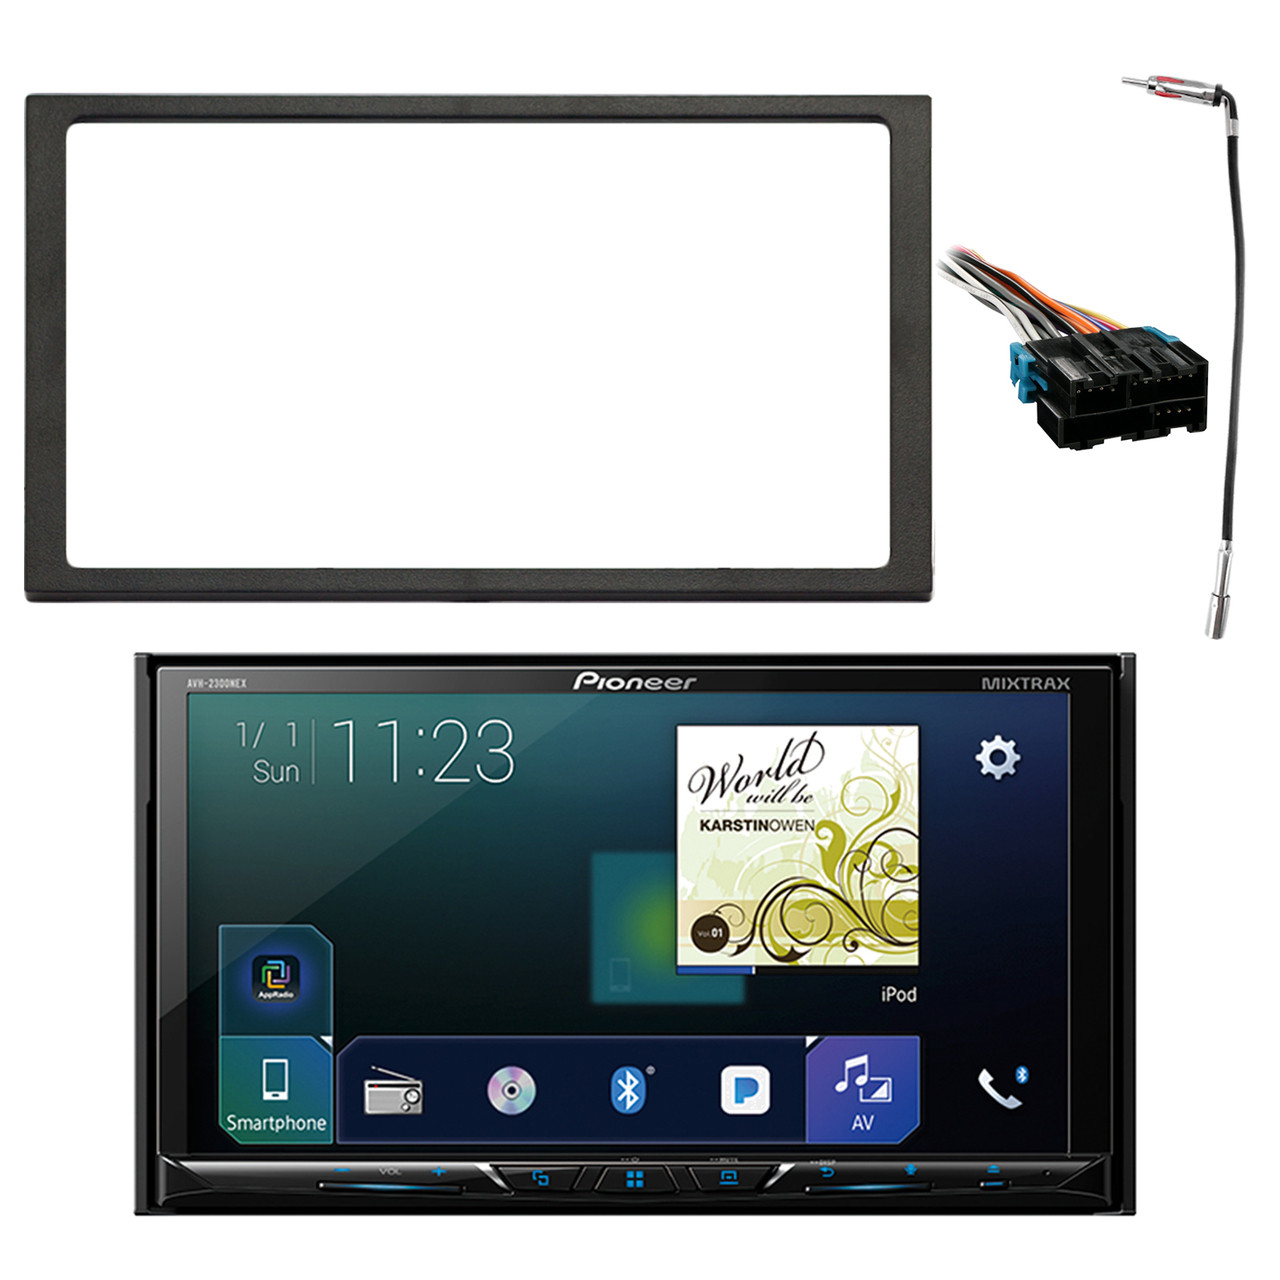 hight resolution of pioneer double din multimedia dvd bluetooth siriusxm ready receiver w 7 wvga display enrock double din install dash kit metra radio wiring harness